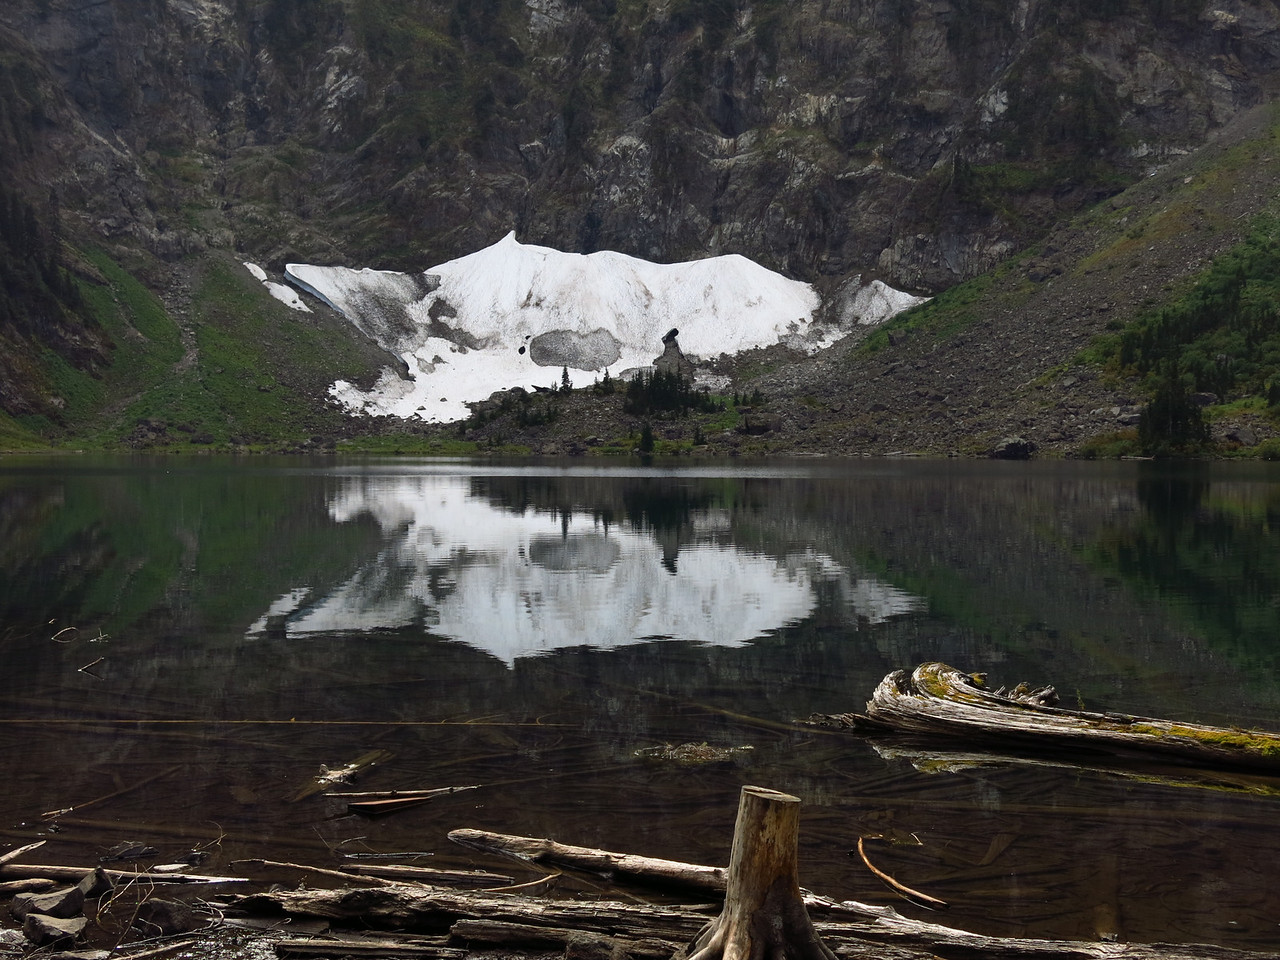 Did I say last on the previous picture?   Snow field, reflections,  and lake bottom